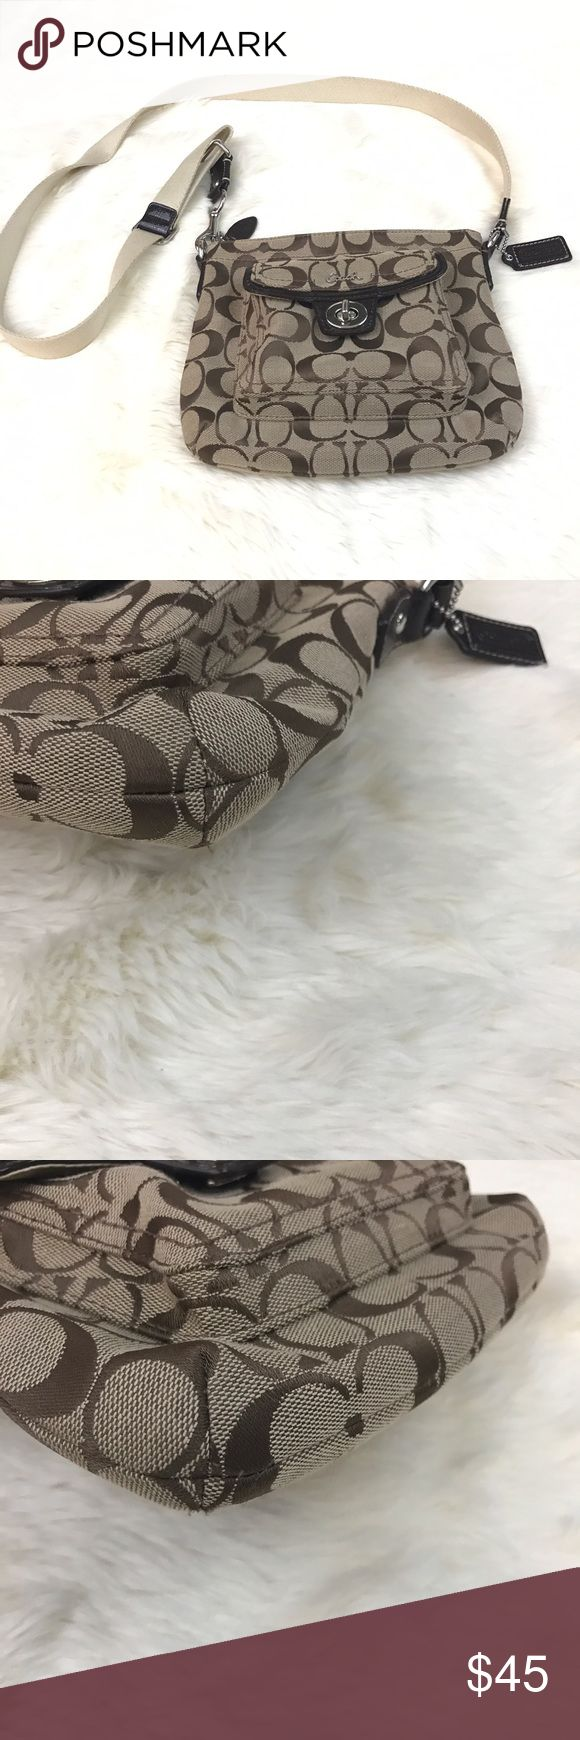 Authentic Coach Swingpack Crossbody Bag Beige See pics for staining/signs of wear. Length 9 inches. Height 7.5 inches. Still lots of wear left in this. Coach Bags Crossbody Bags